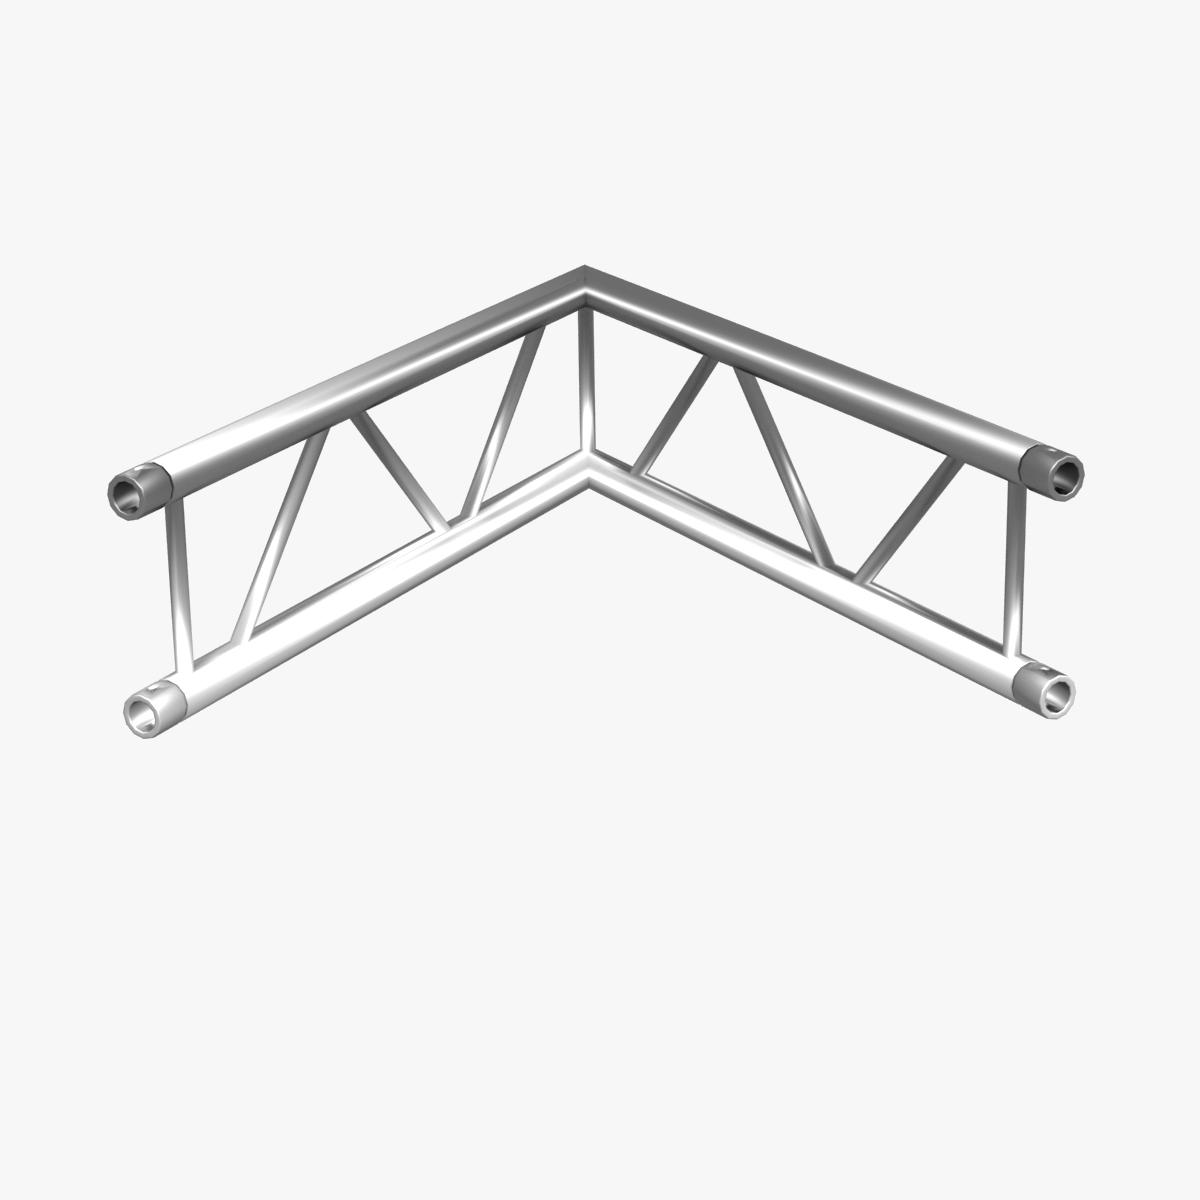 beam trusses (collection 24 modular pieces) 3d model 3ds max dxf fbx bmp blend c4d dae other obj 268752